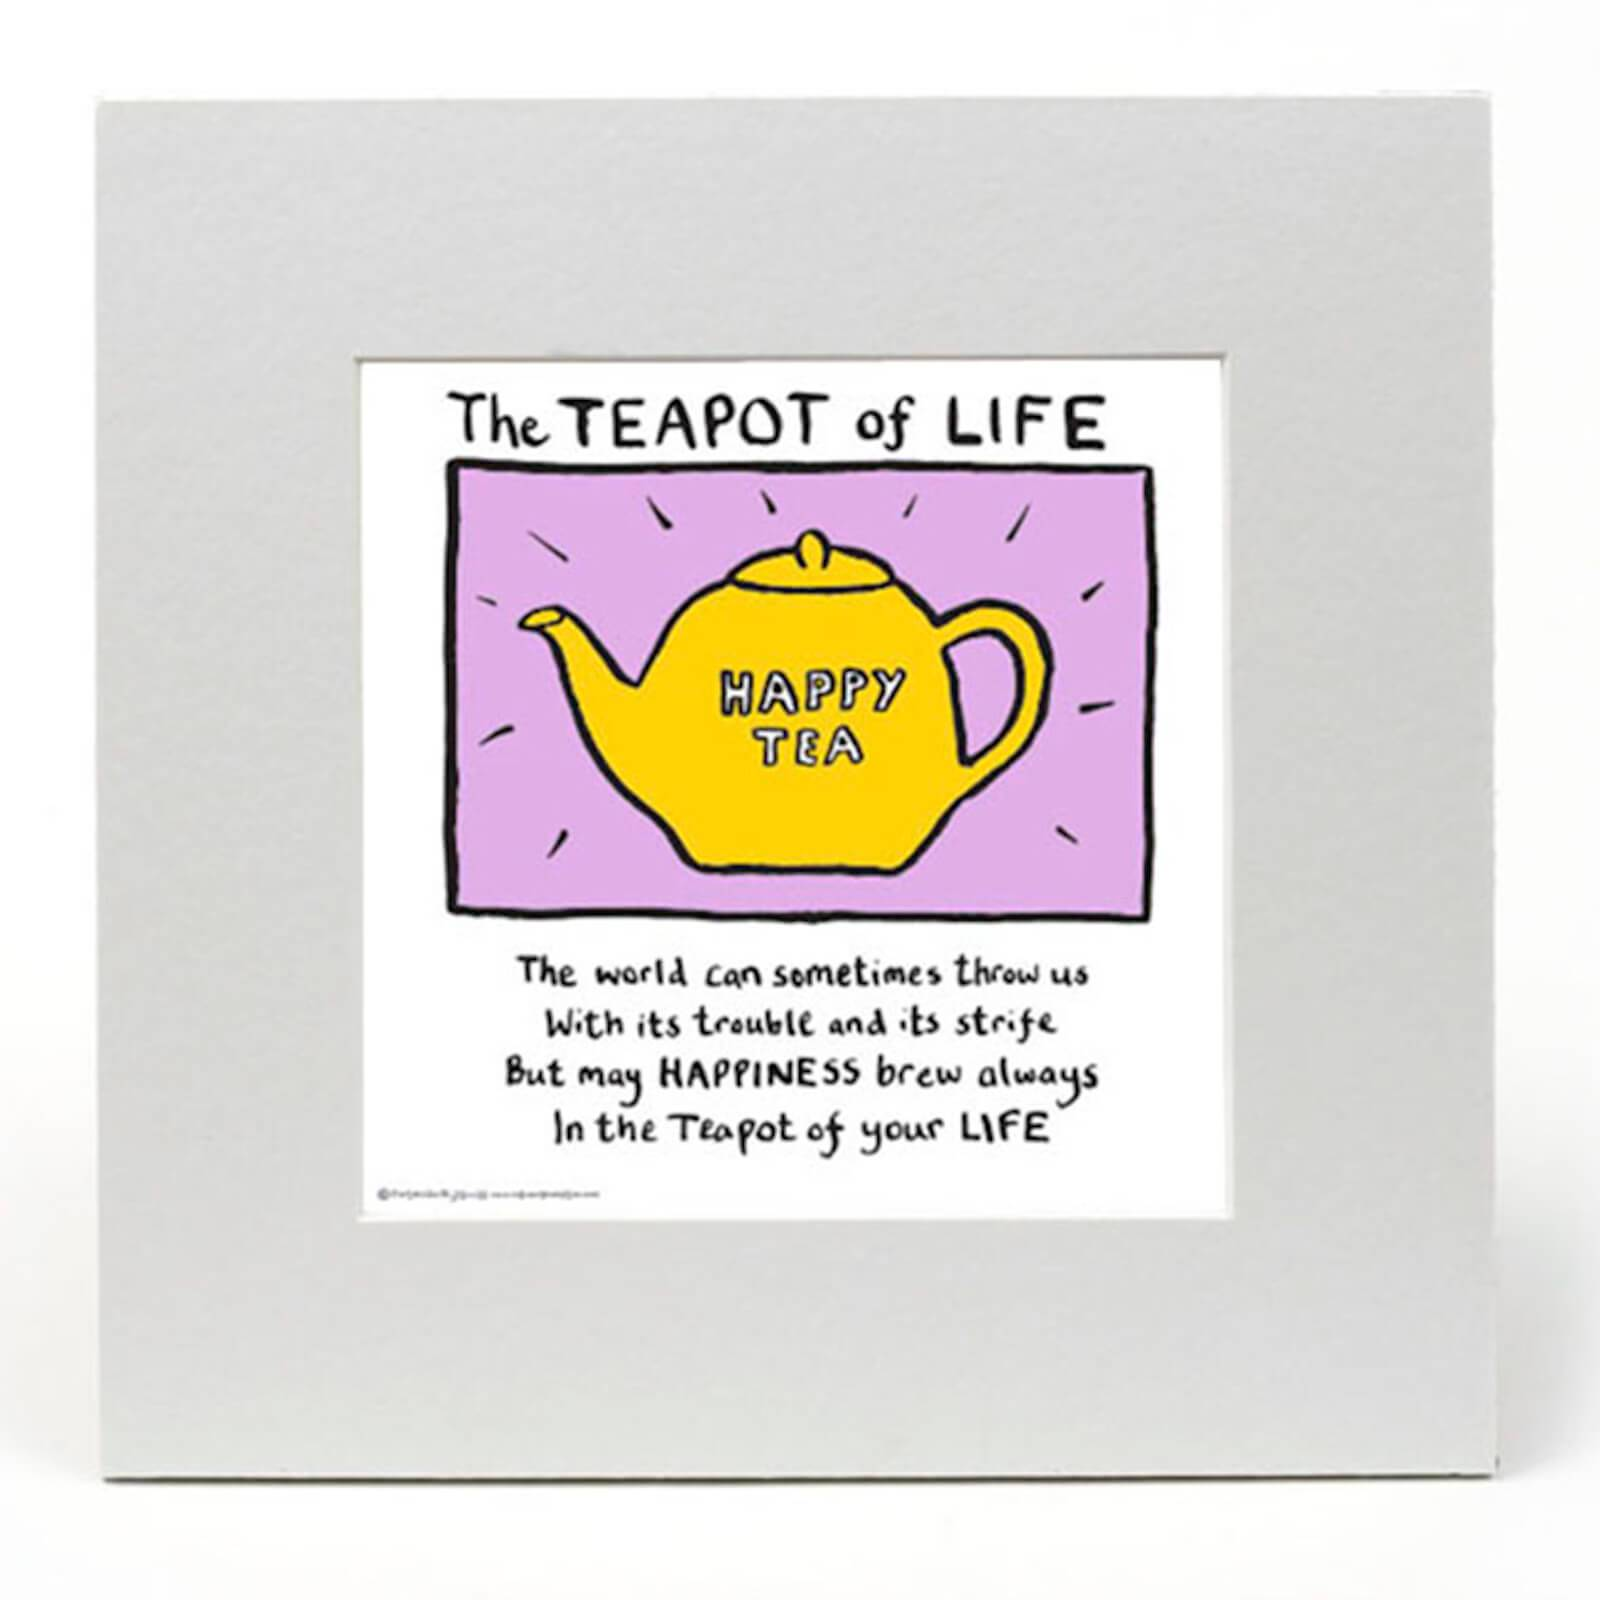 Edward Monkton The Teapot of Life by Edward Monkton